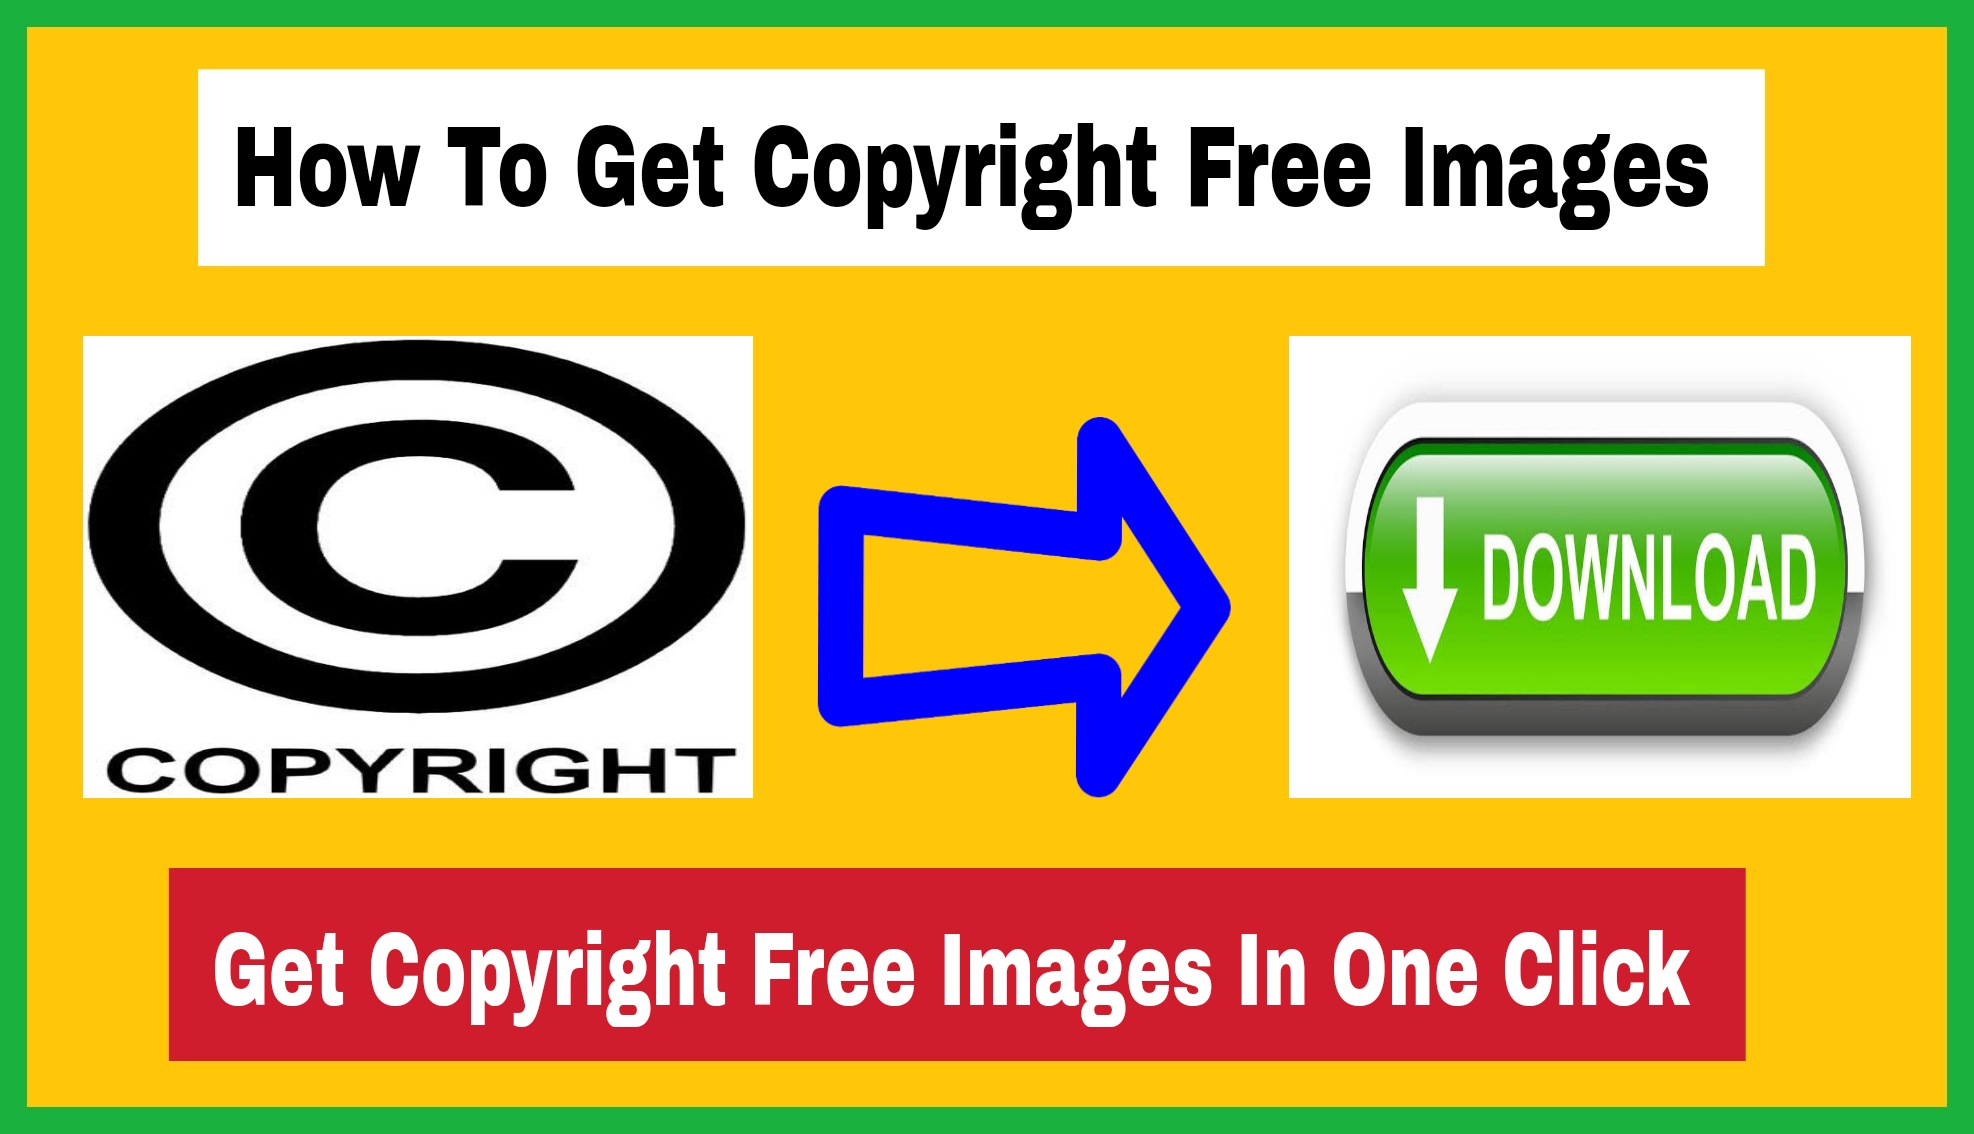 How to Get Copyright Free Images